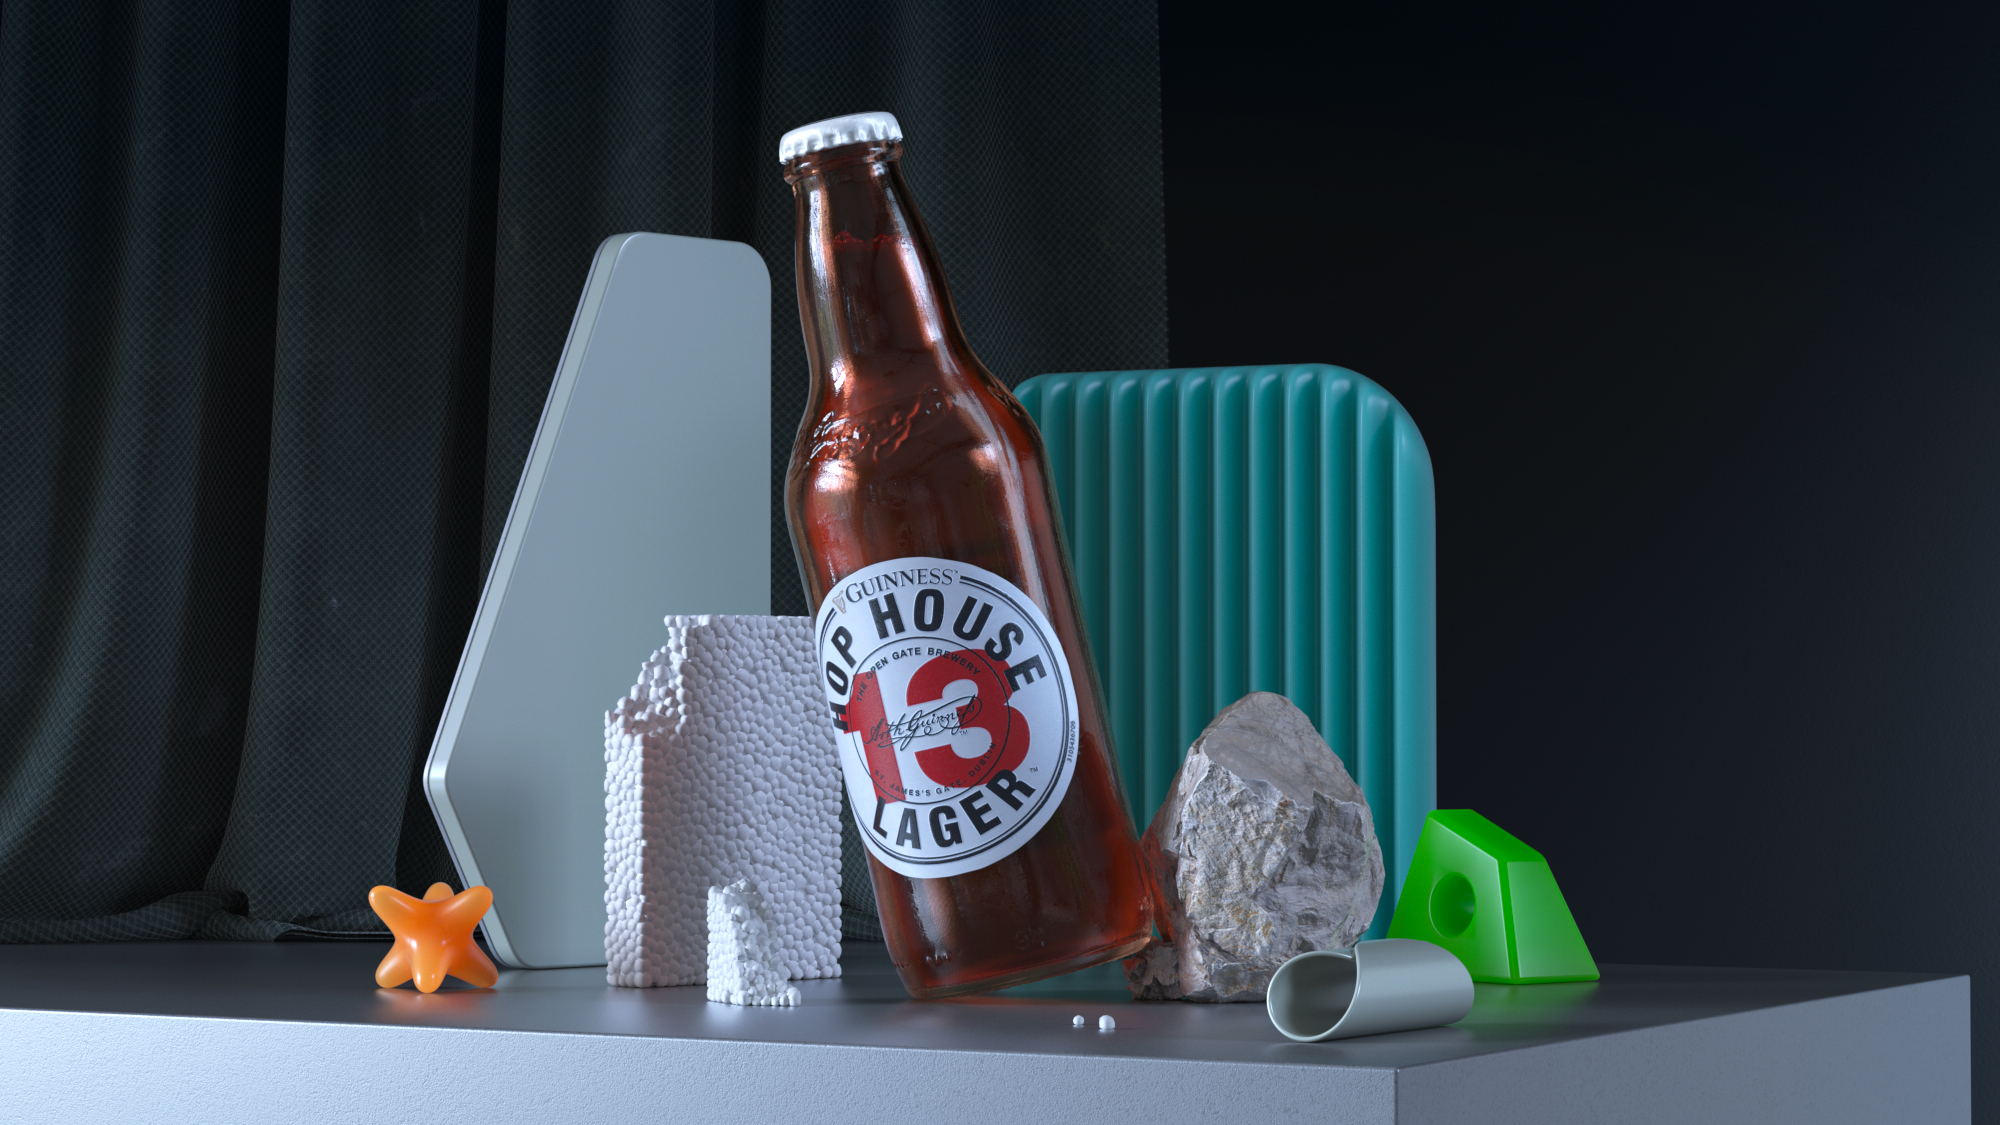 All the details of this Still-Life 3D Render are designed to highlight the main figure and achieve an attractive rendering for marketing.